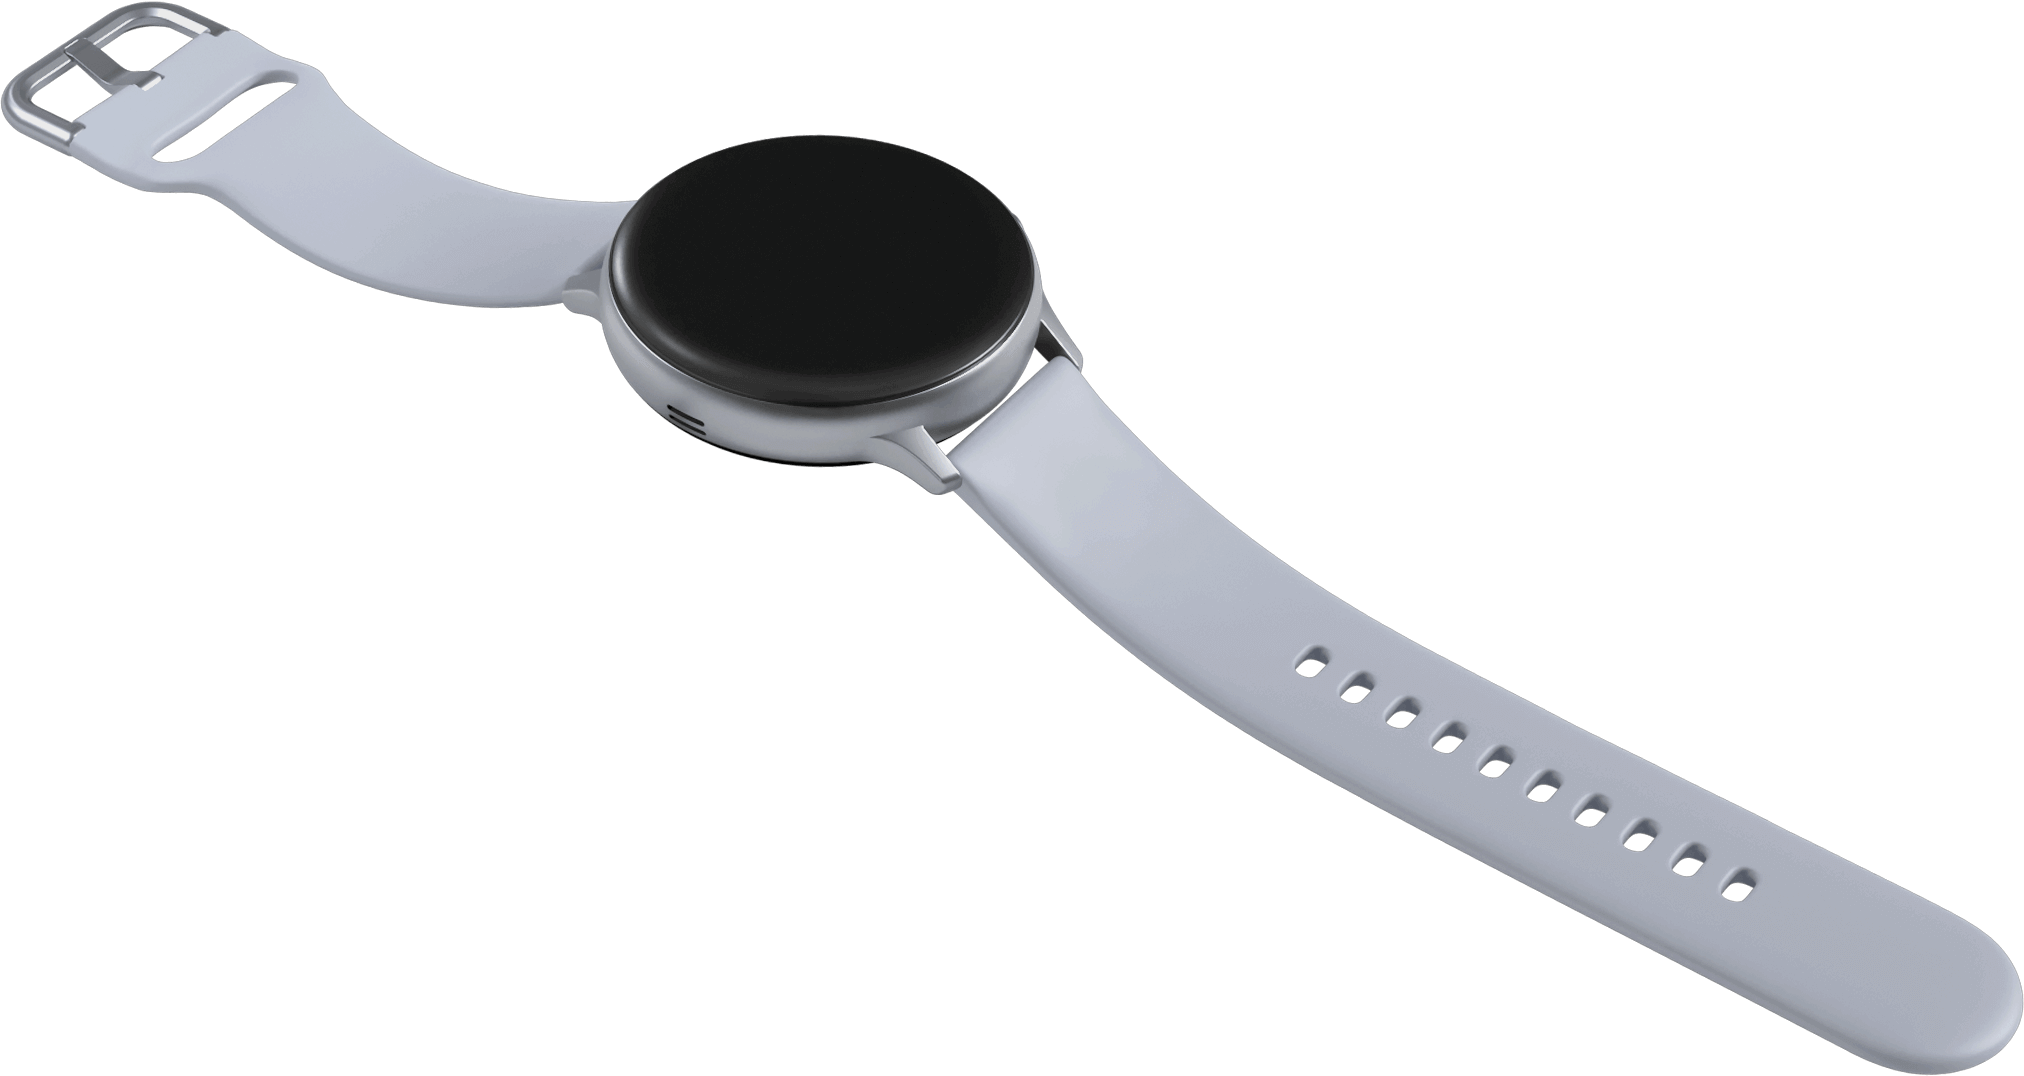 A Galaxy Watch active2 watch in cloud silver charging on a coin-shaped wireless charger directly below it that has the same circumference as the watch face.